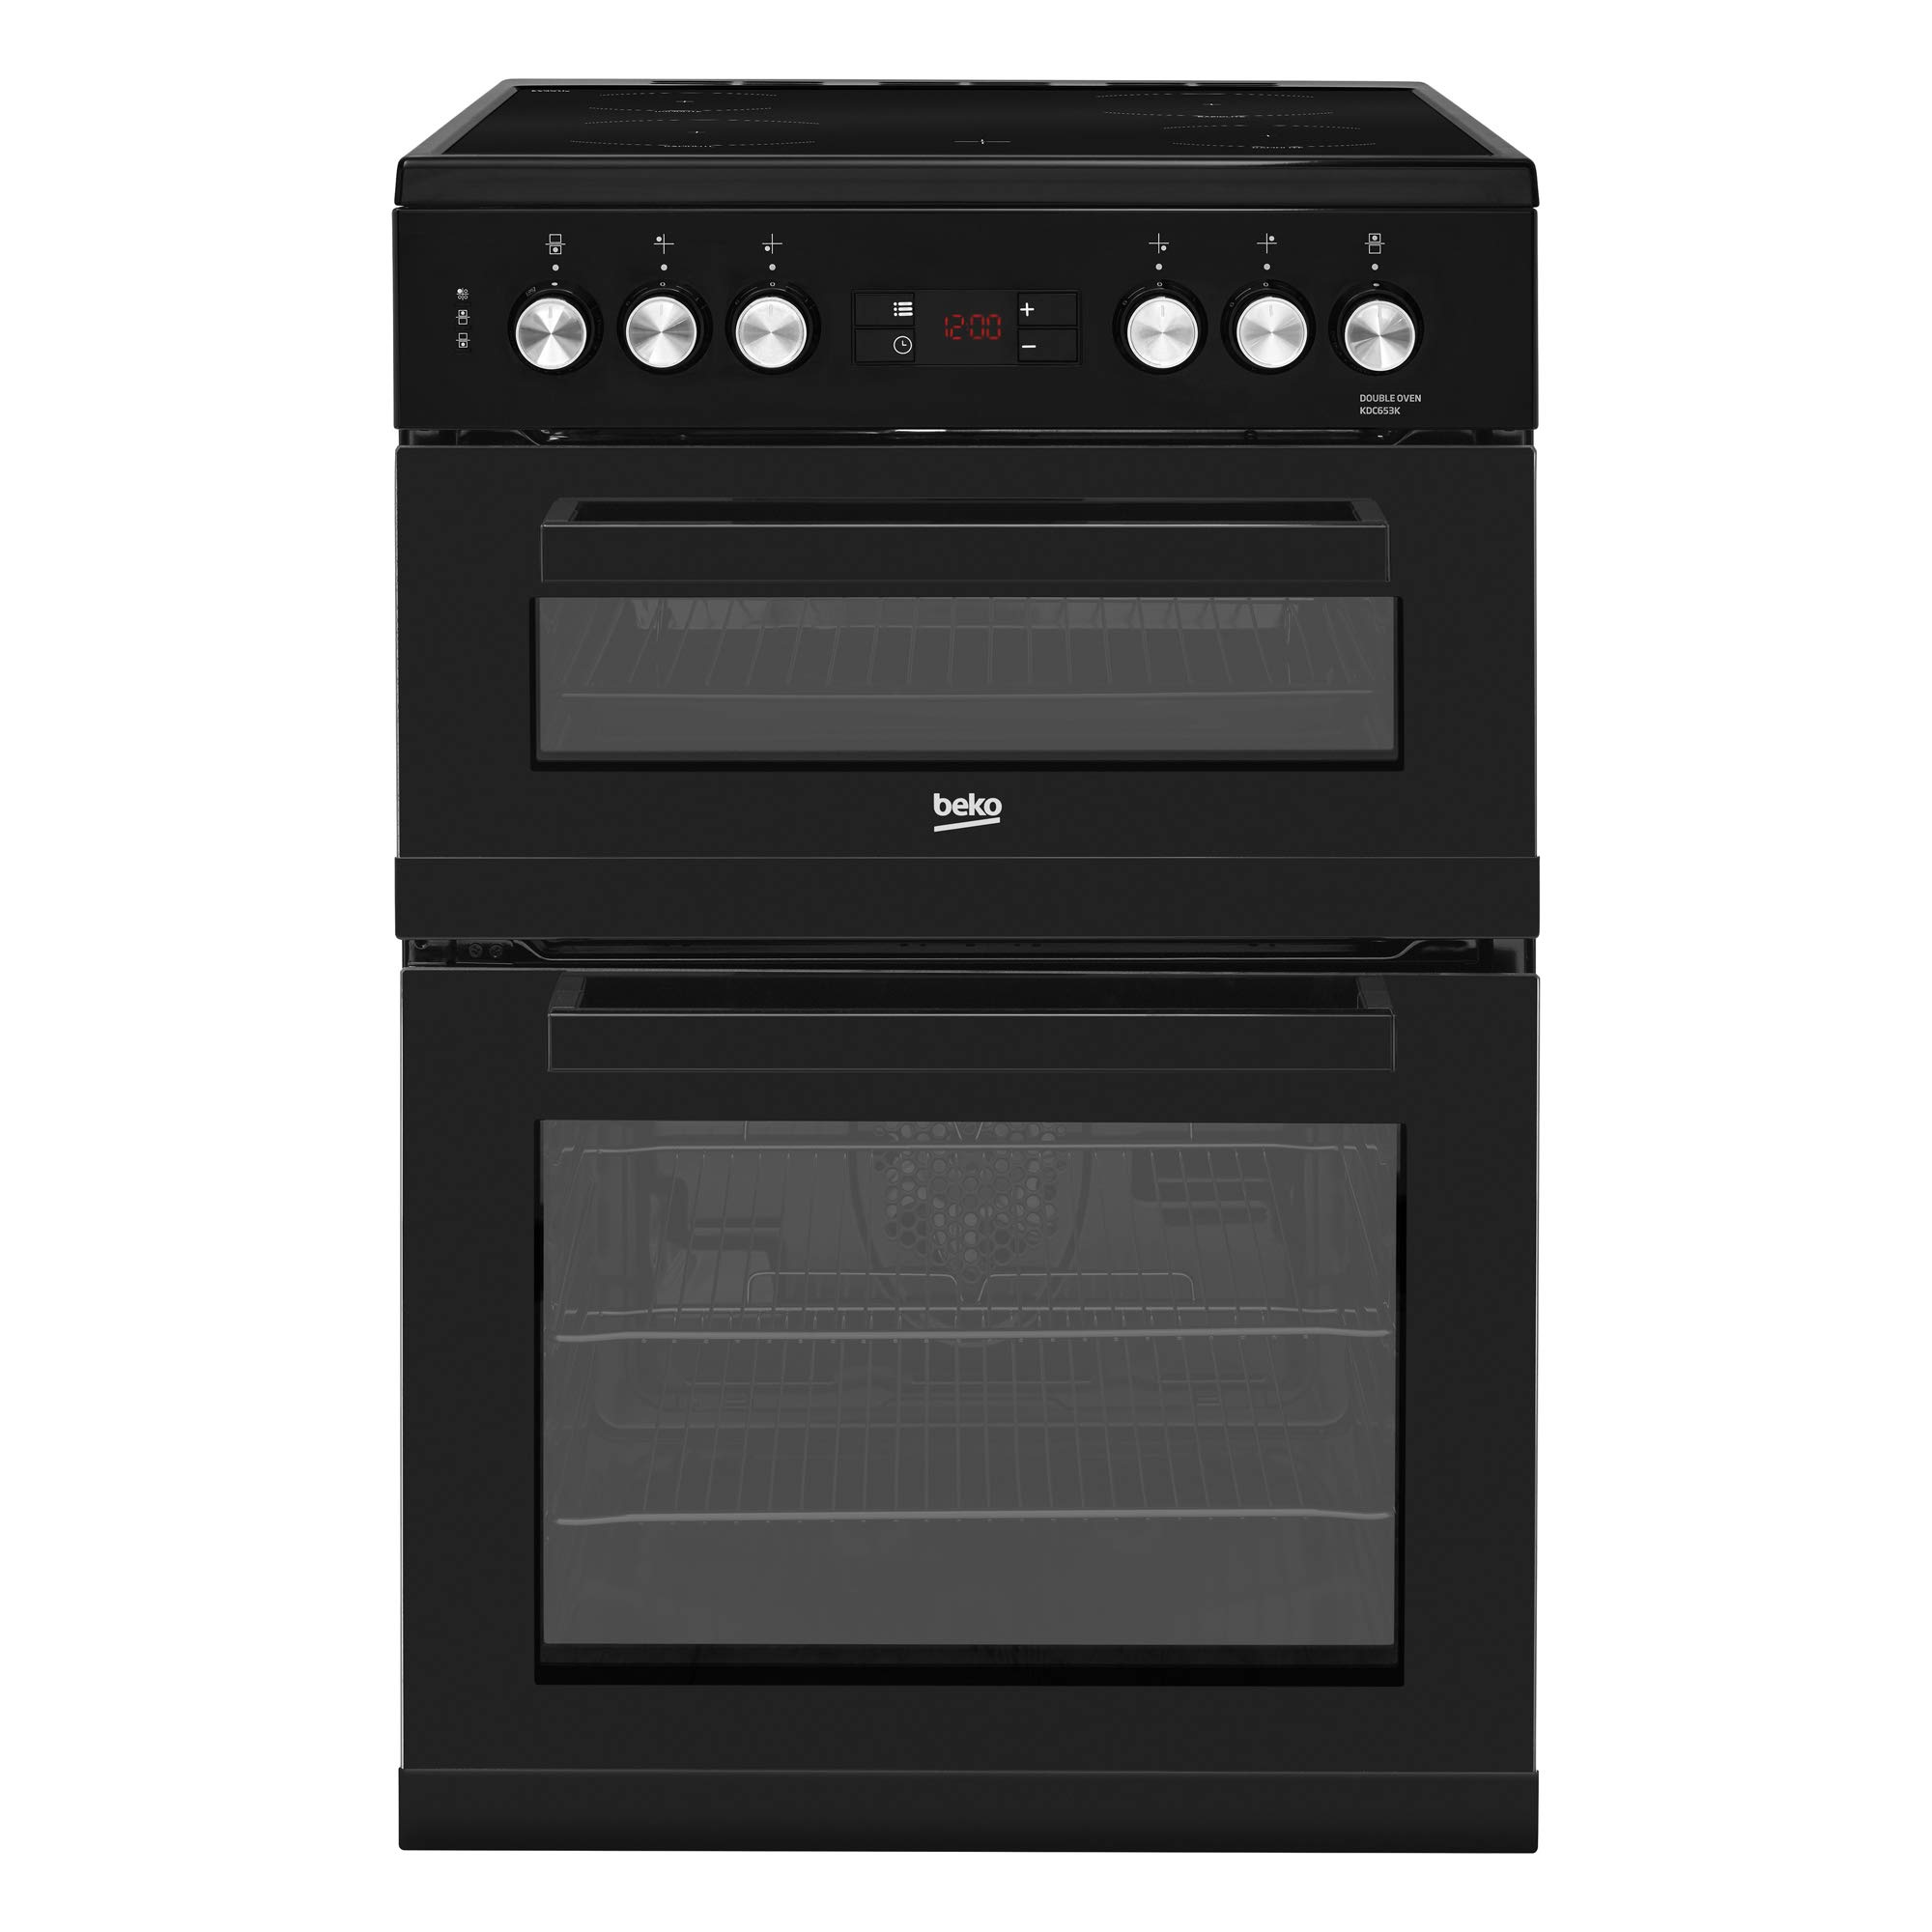 beko electric cooker amazon co ukbeko kdc653k 60cm double oven ceramic cooker in black with fully programmable timer